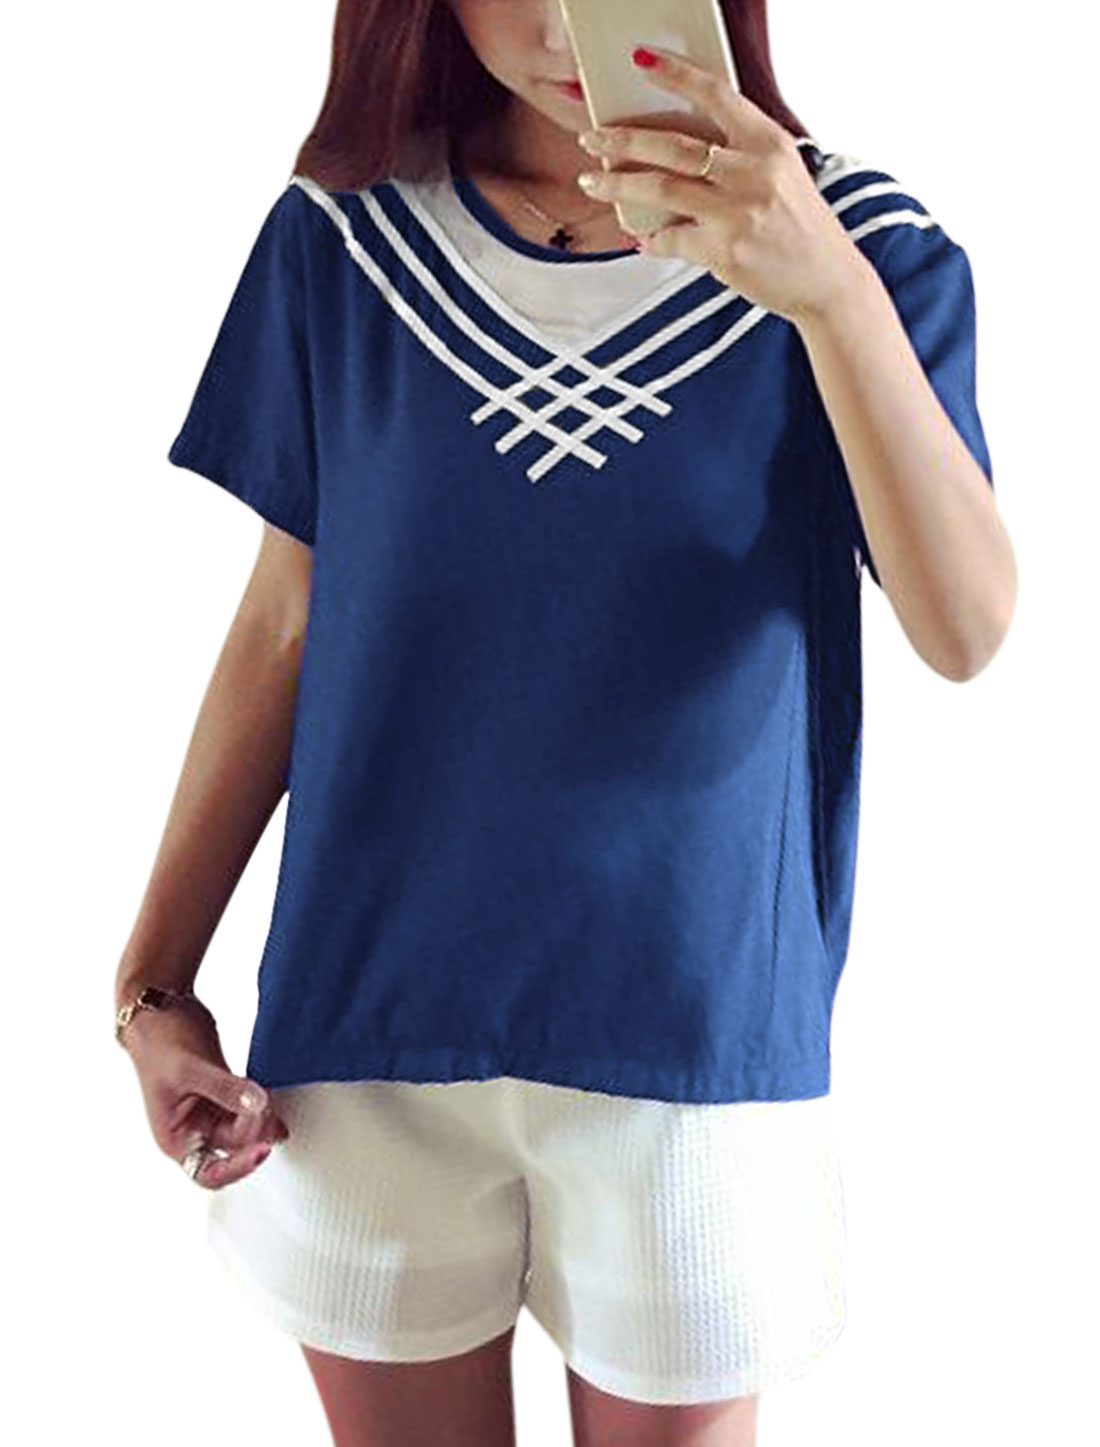 Women Multi Stripes Stitching Short Sleeves lvoer Casual Tee Navy Blue XS